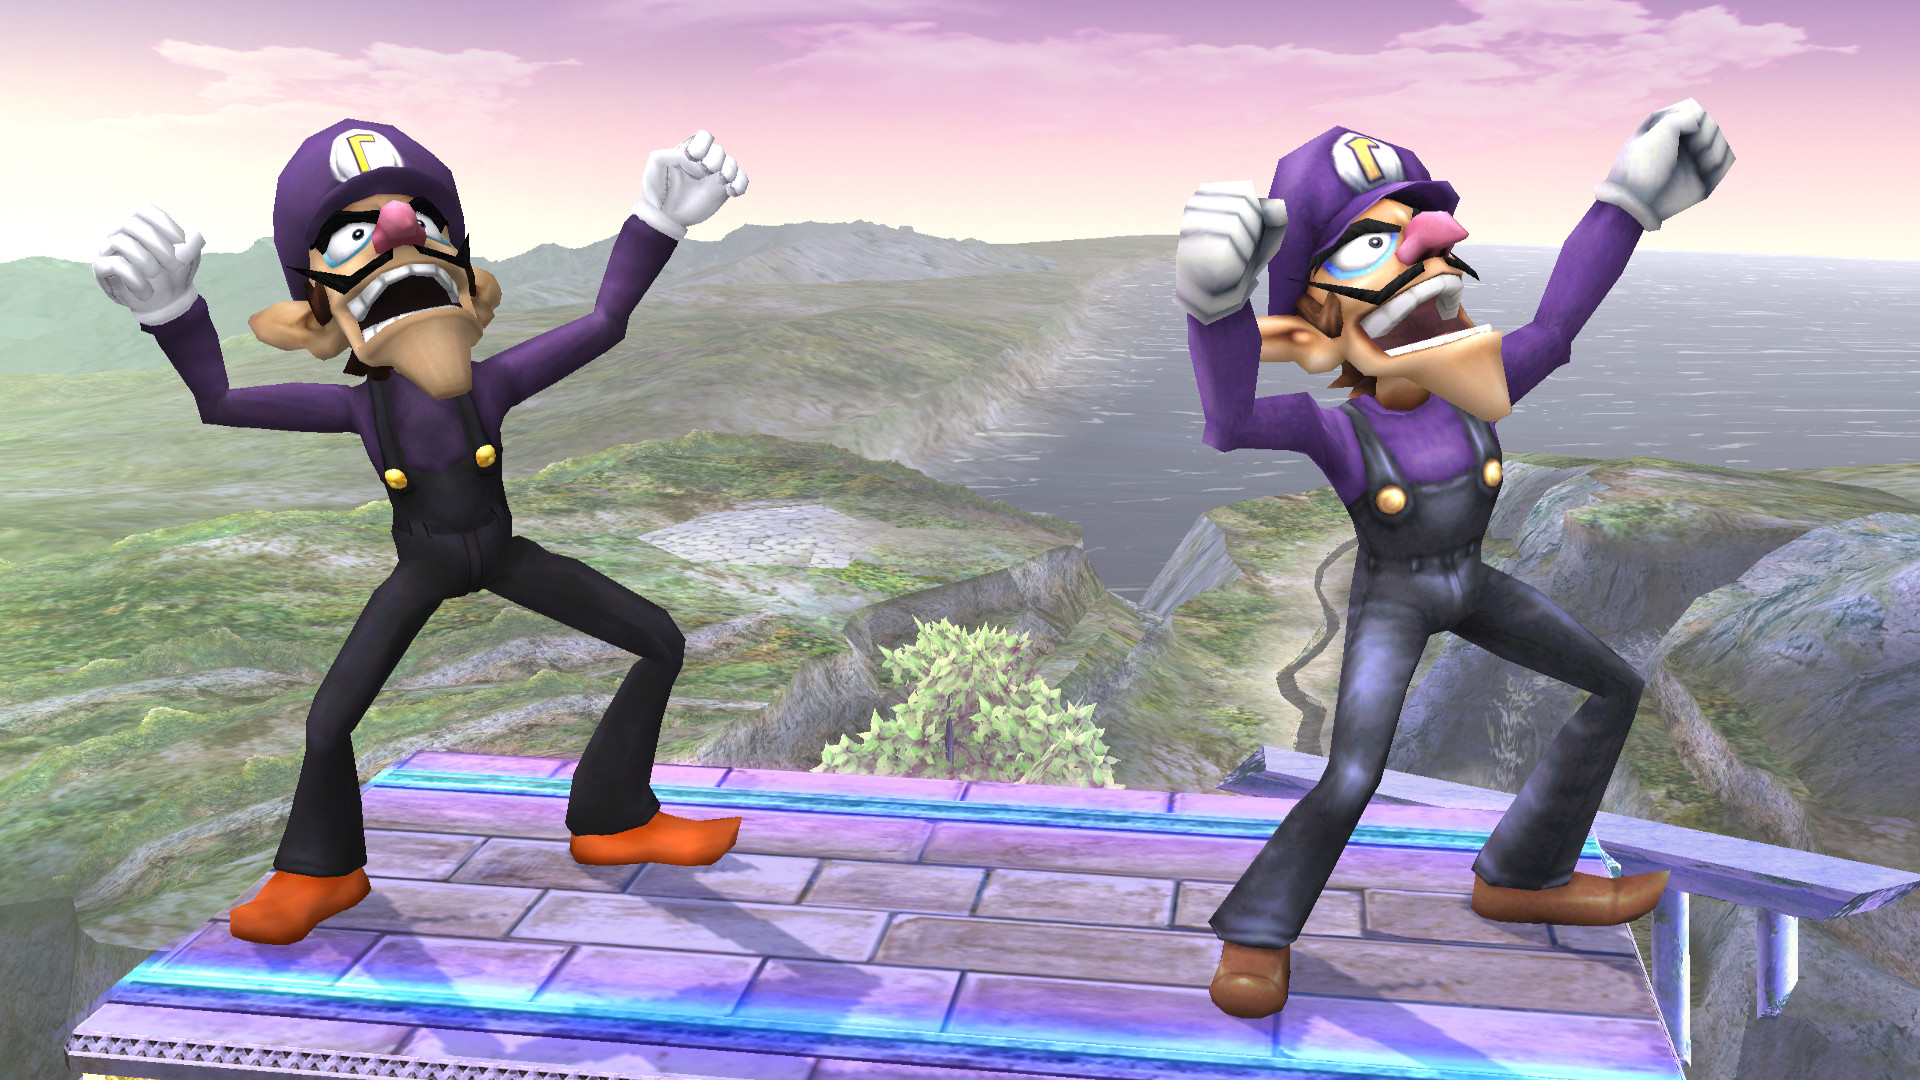 Yep, that's right its back as one of the alts for the new Waluigi.